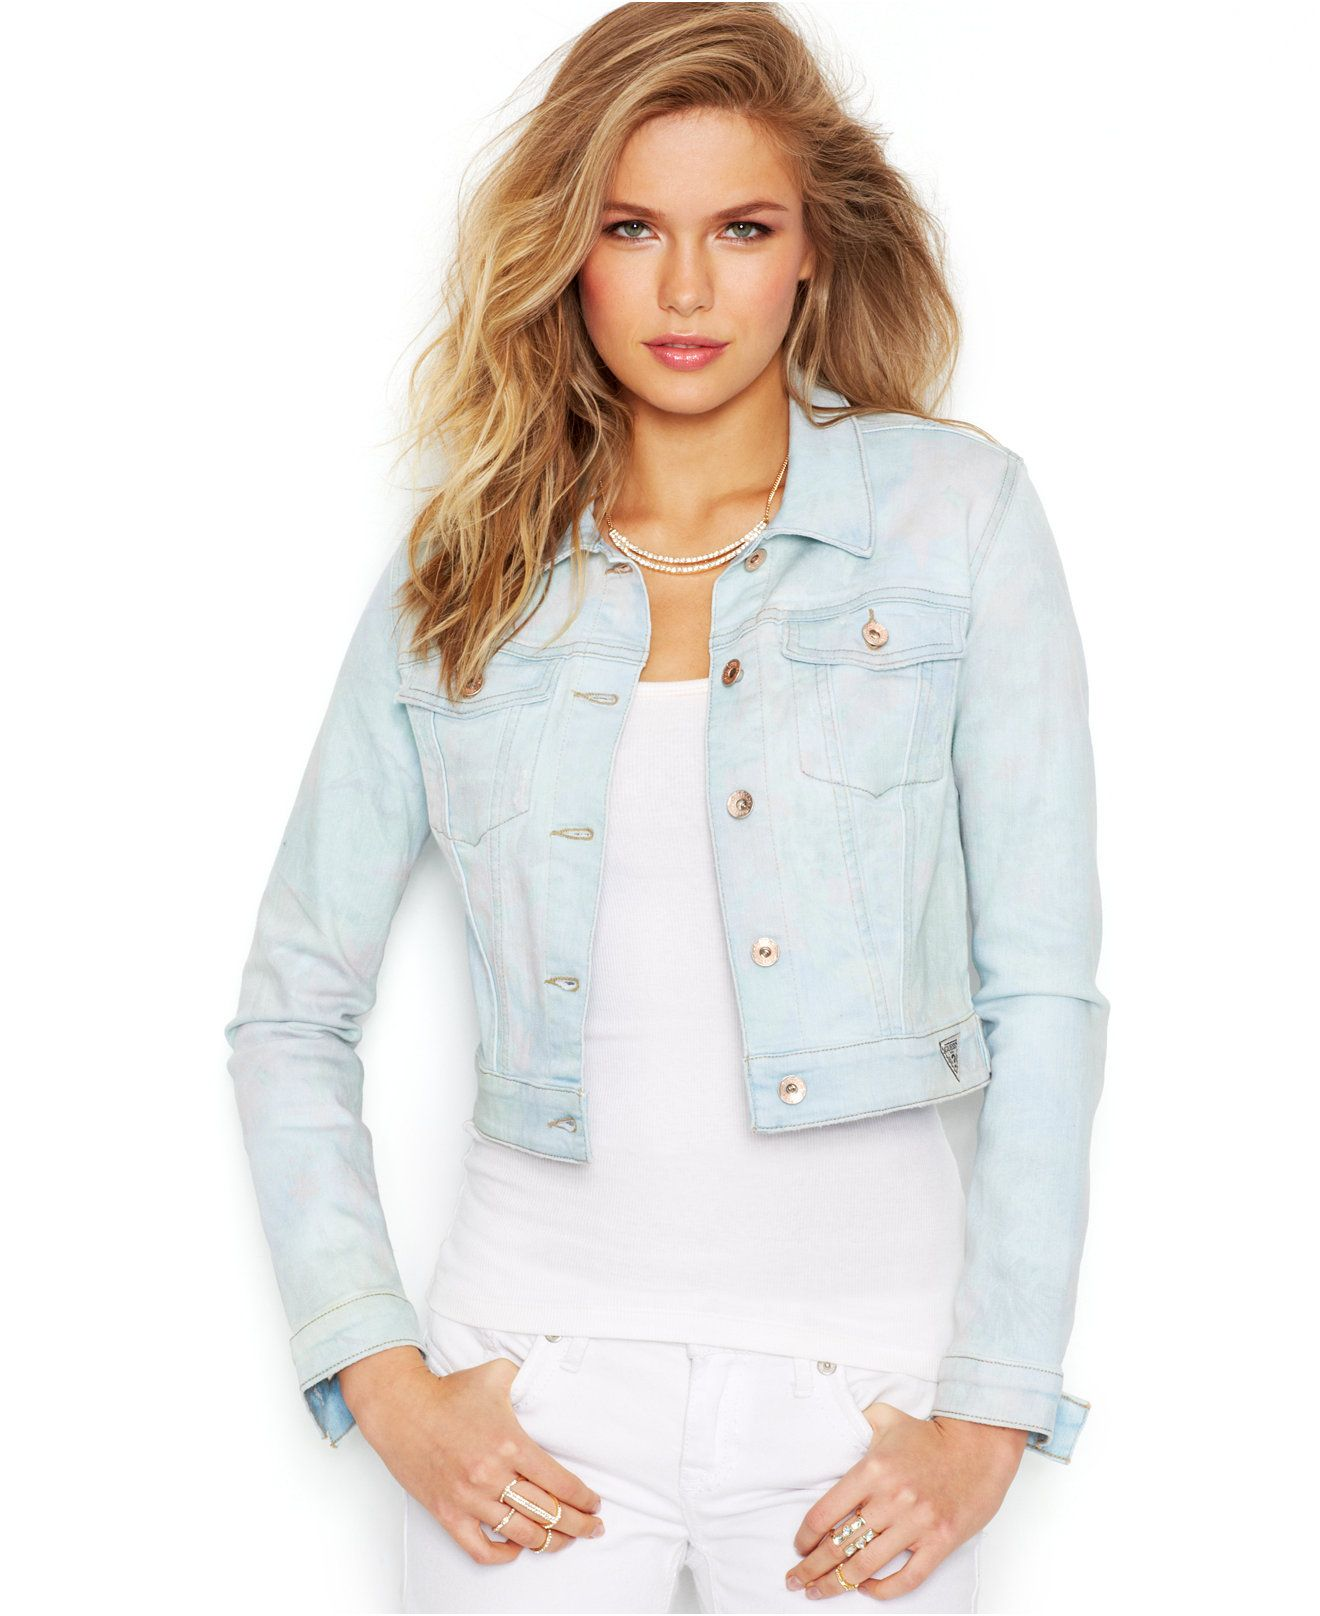 GUESS Cropped Jean Jacket, Light Blue Floral Wash - Jackets - Women - Macy's